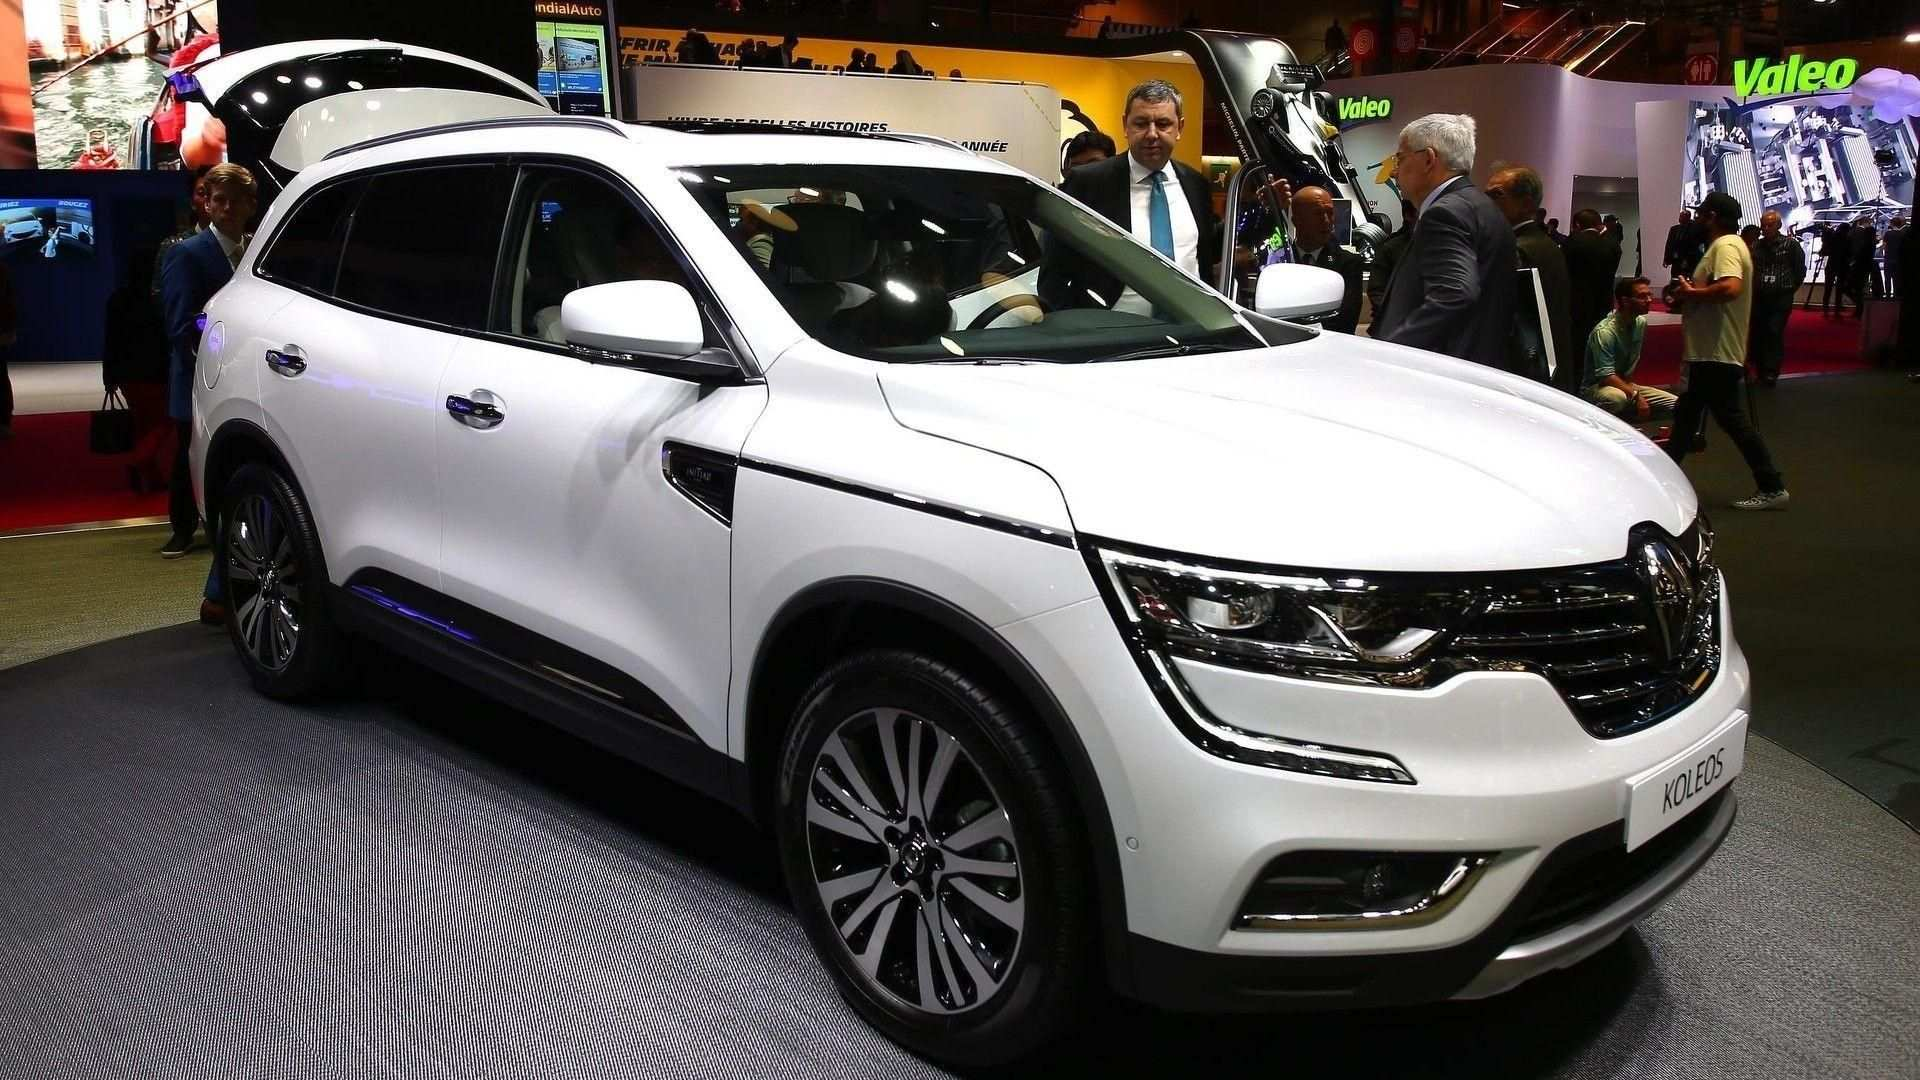 52 New 2019 Renault Suv Research New by 2019 Renault Suv